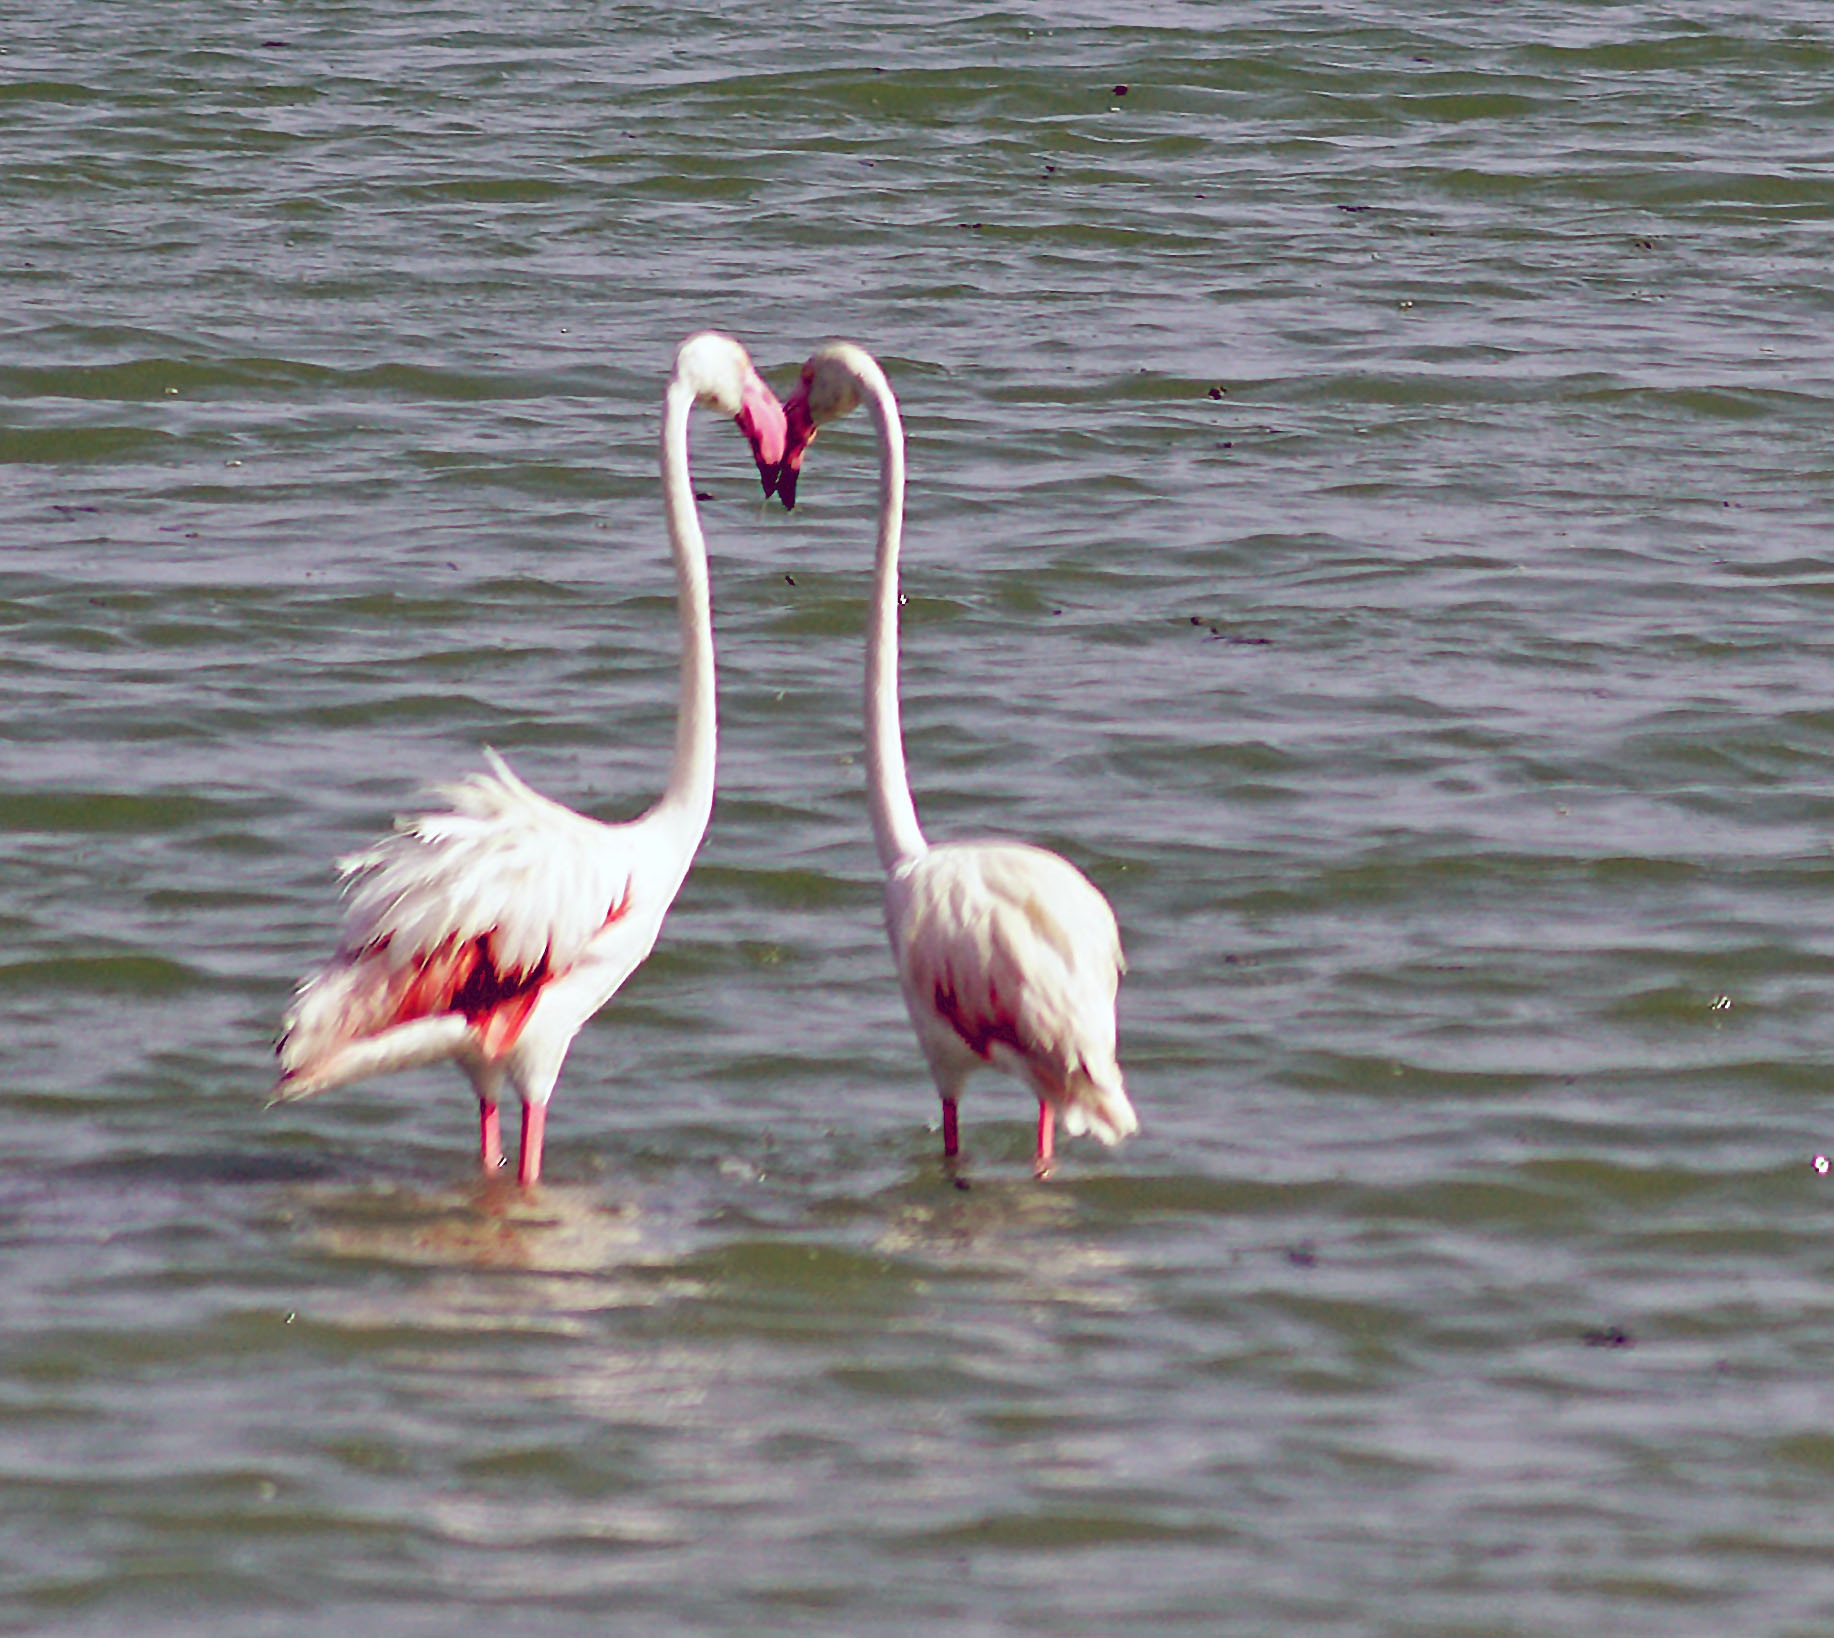 KISSING FLAMINGOS by shotters